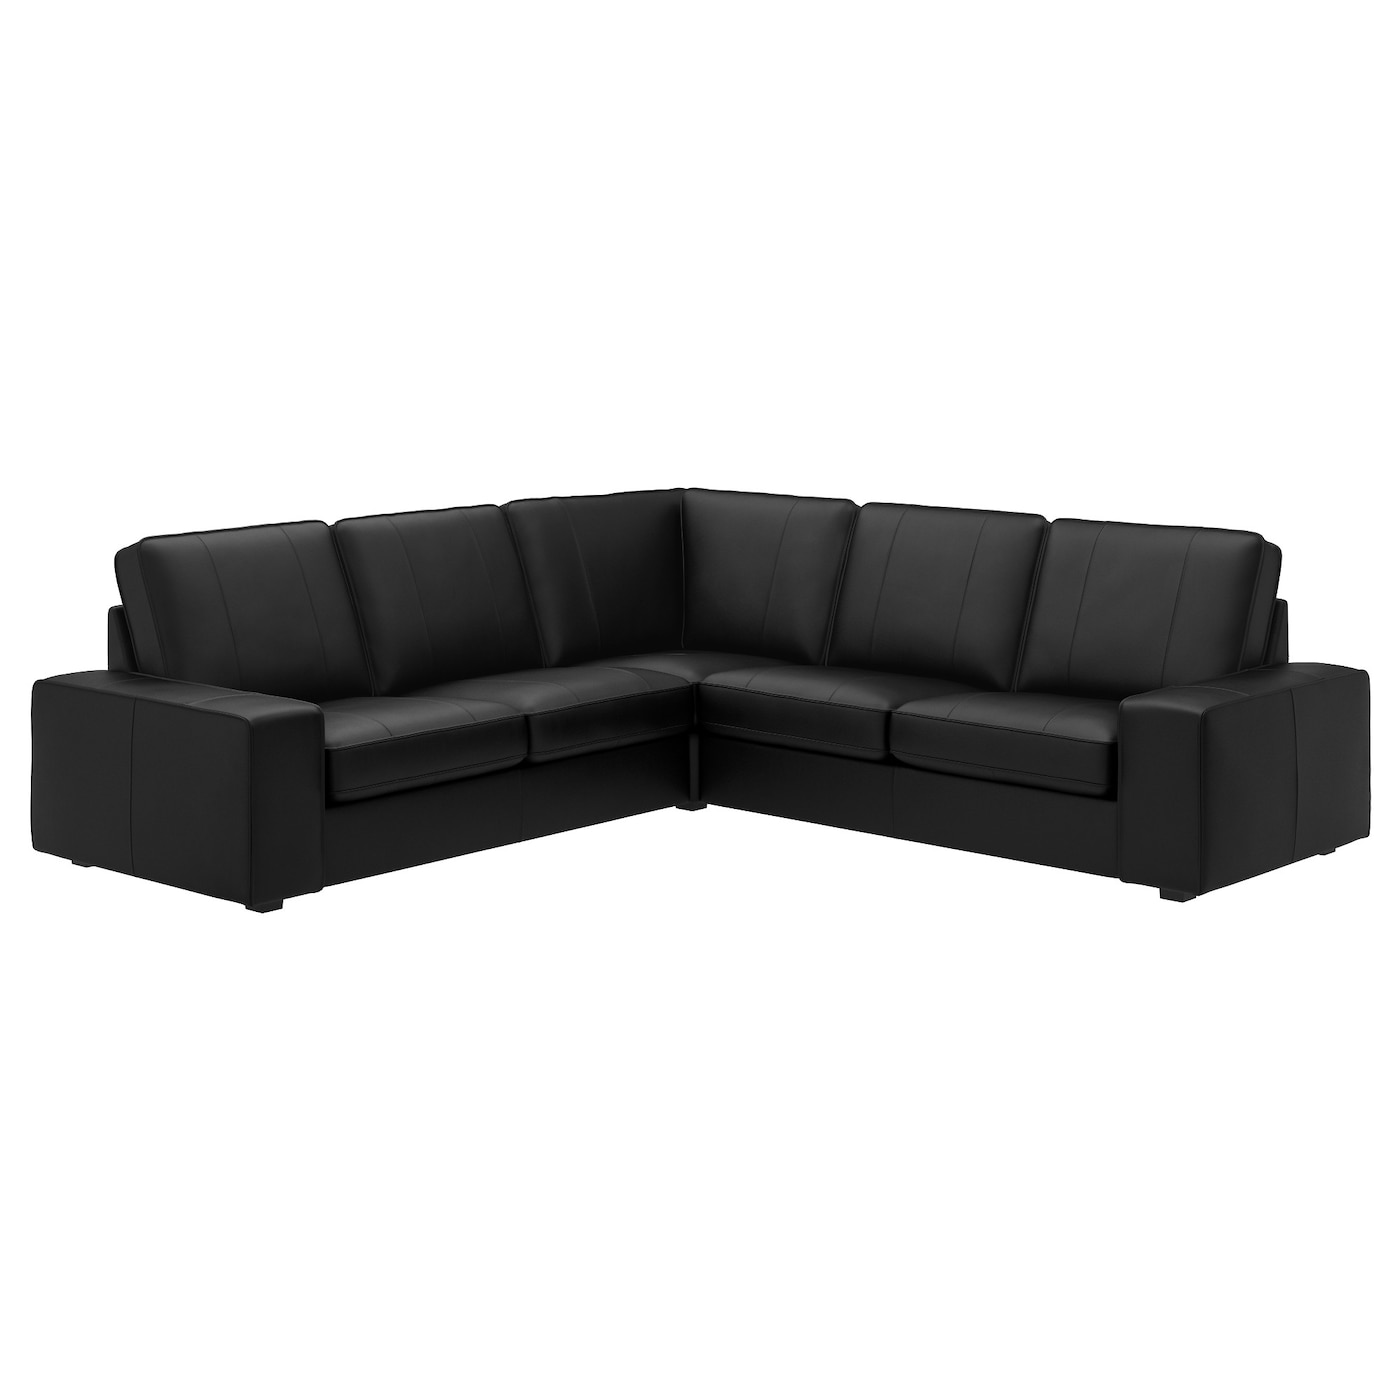 IKEA KIVIK corner sofa 2+2 10 year guarantee. Read about the terms in the guarantee brochure.